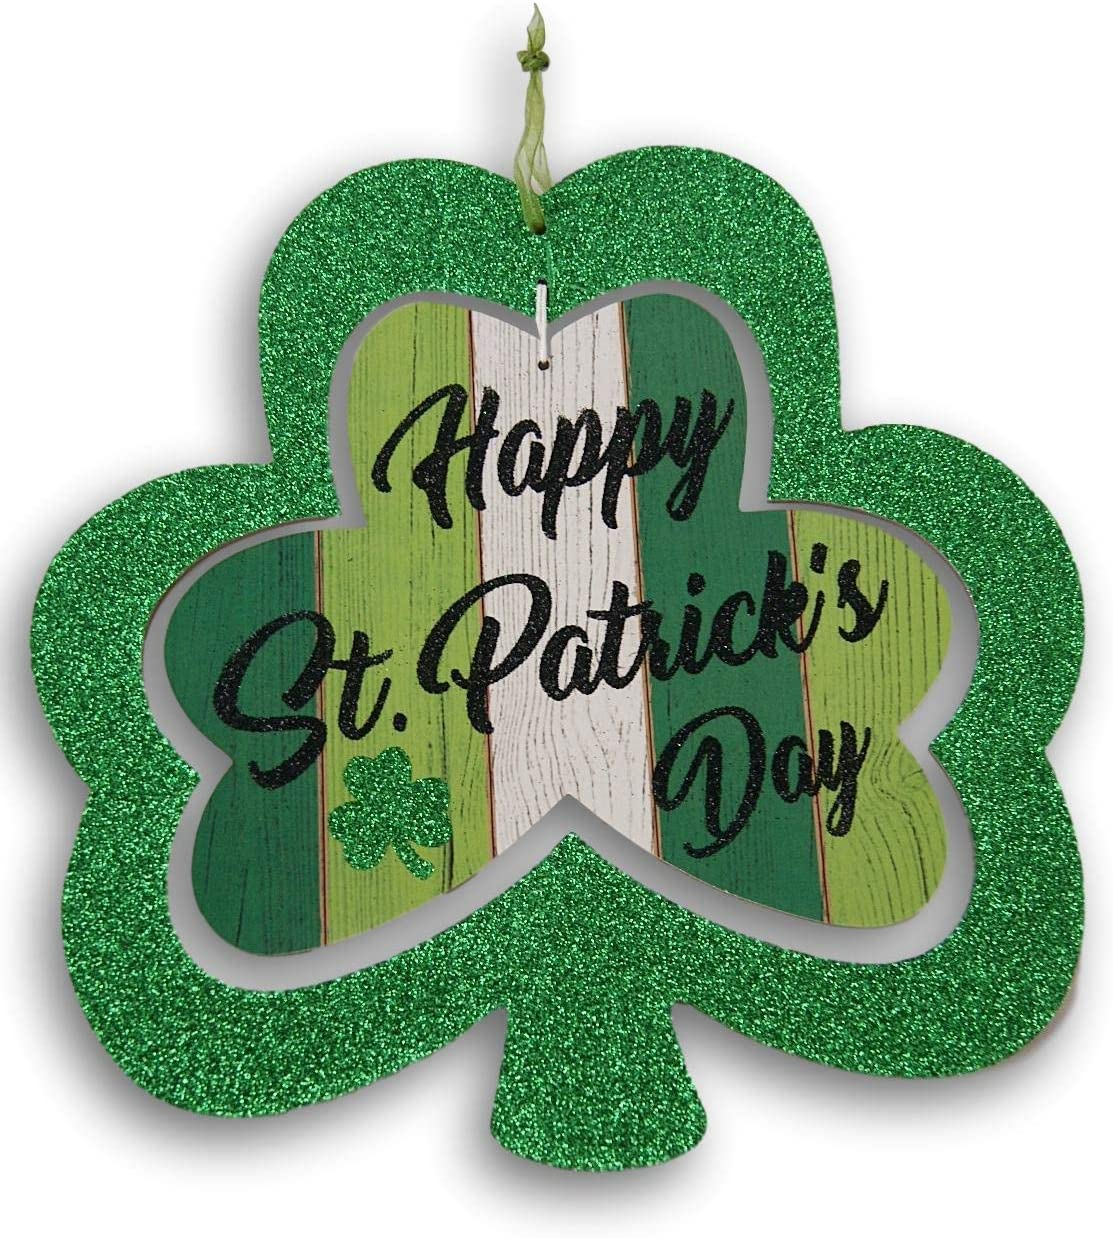 Seasonal Decor Happy St. Patrick's Day Decorative Glittery Hanging Sign - 10 x 11 Inches